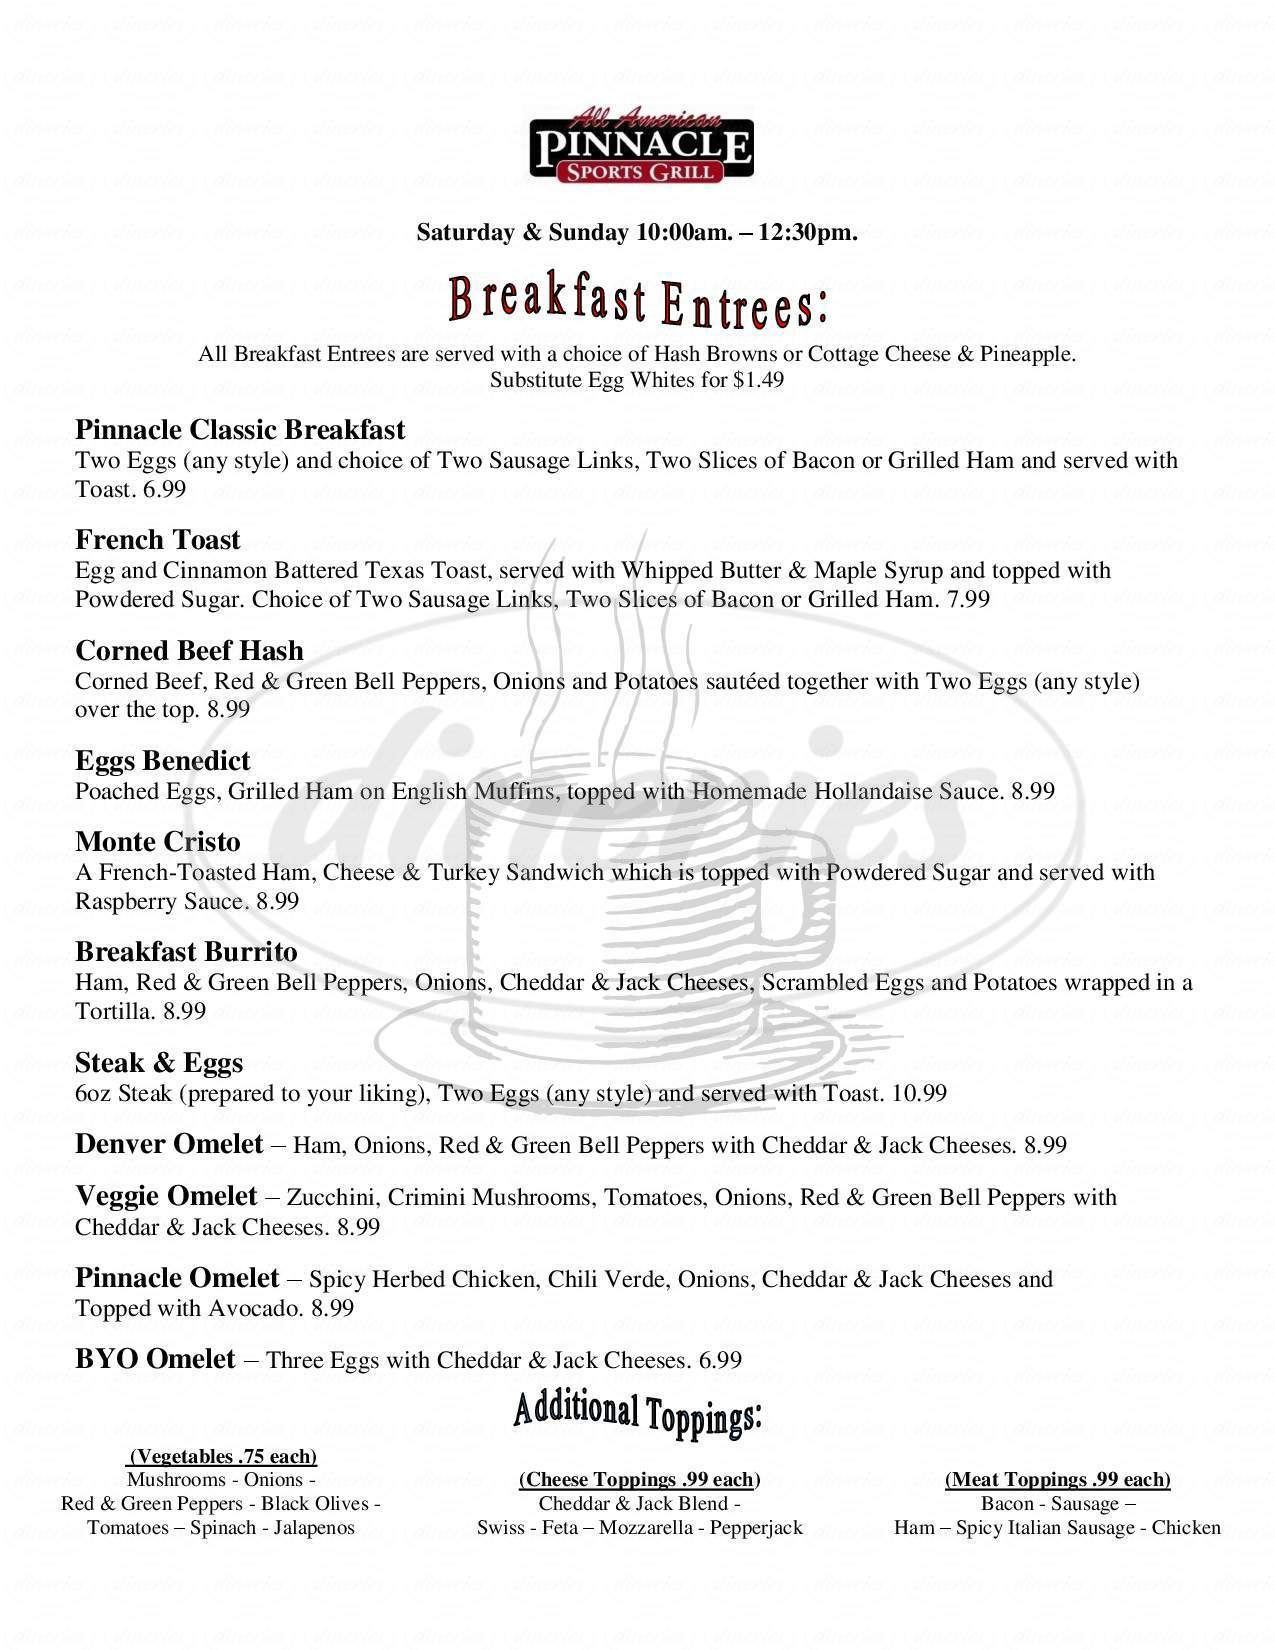 menu for Pinnacle Sports Bar & Grill